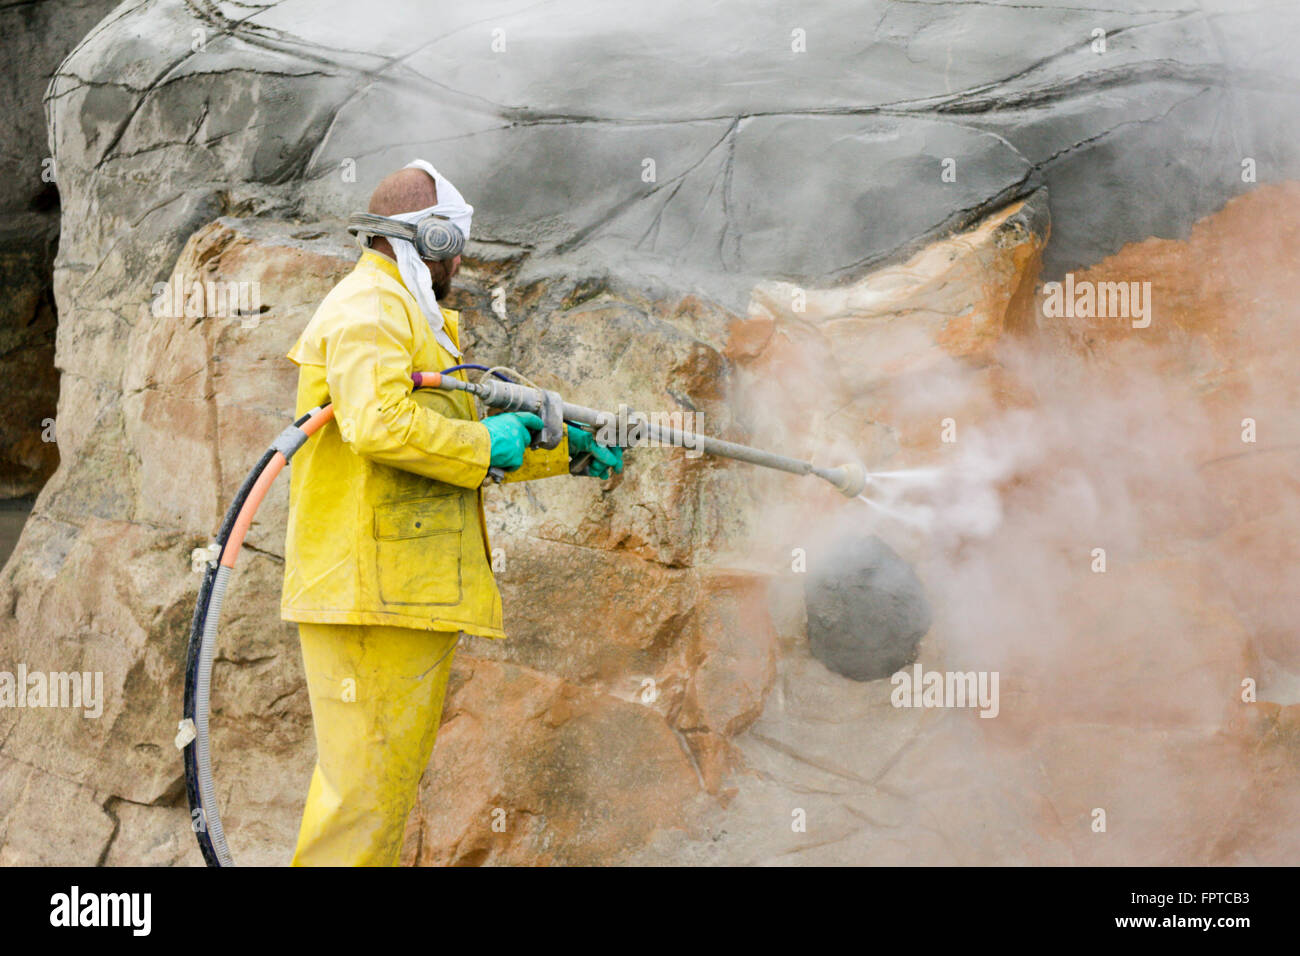 steam cleaning stock photos   steam cleaning stock images cleaning a sofa cleaning a sofa